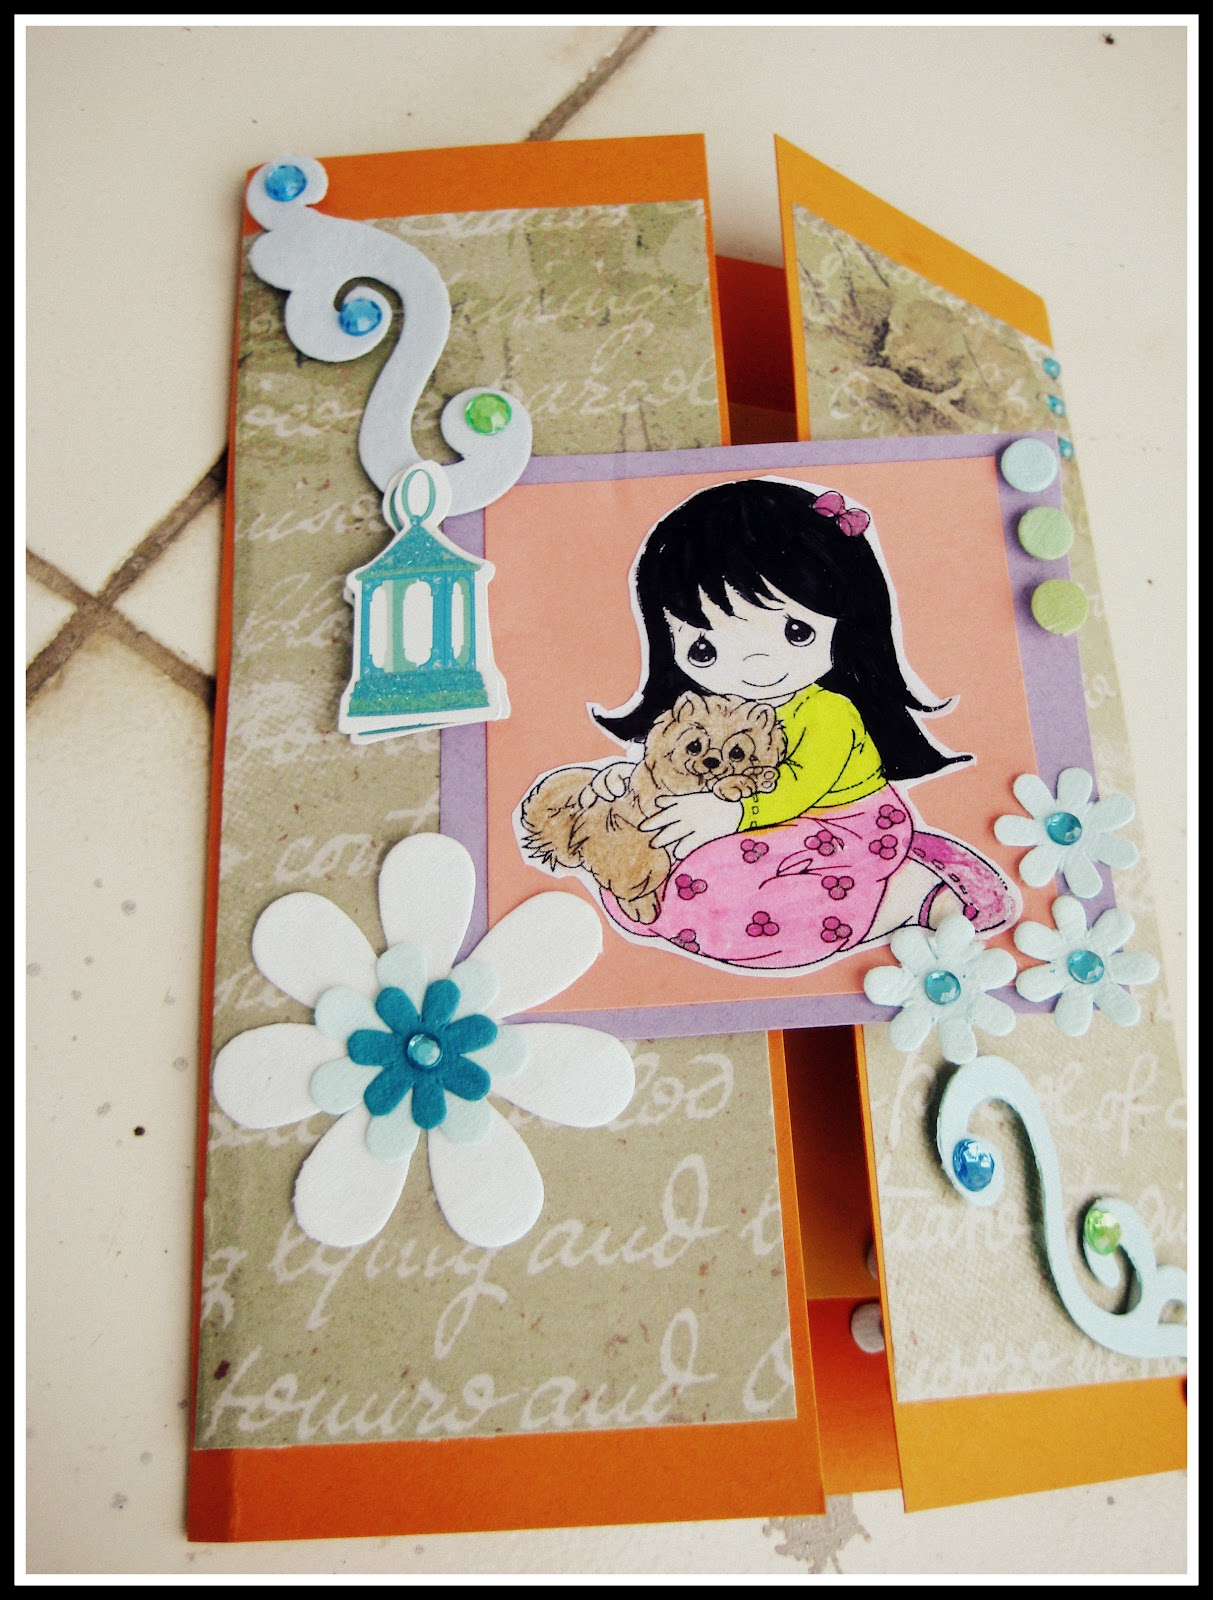 Exceptional Friendship Day Card Making Ideas Part - 7: I Am Sending This For